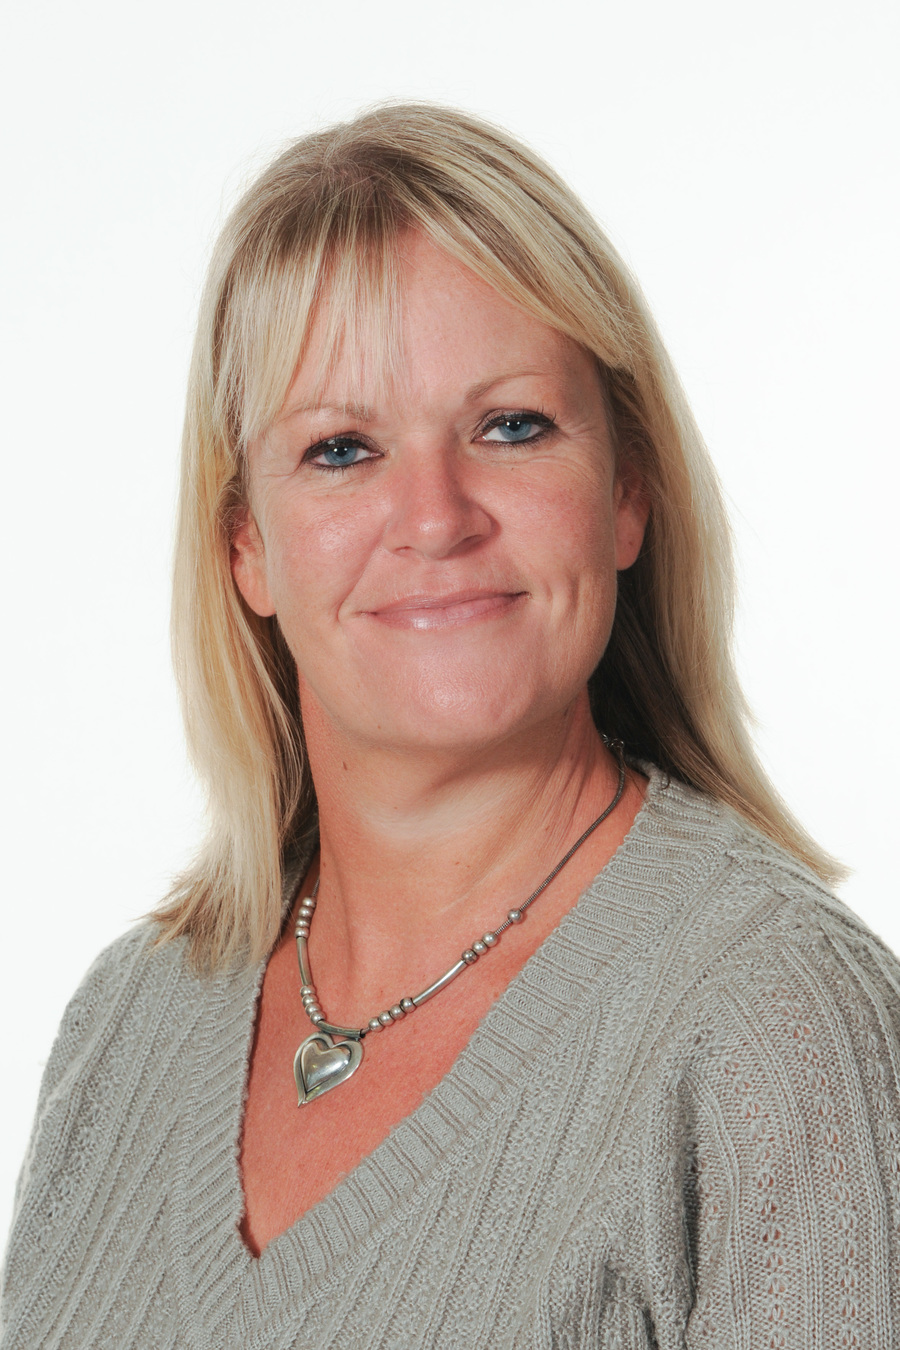 Claire Moggridge BEd (Hons) Cherry Class teacher, Foundation Stage Leader and YR&1 Phase Lead